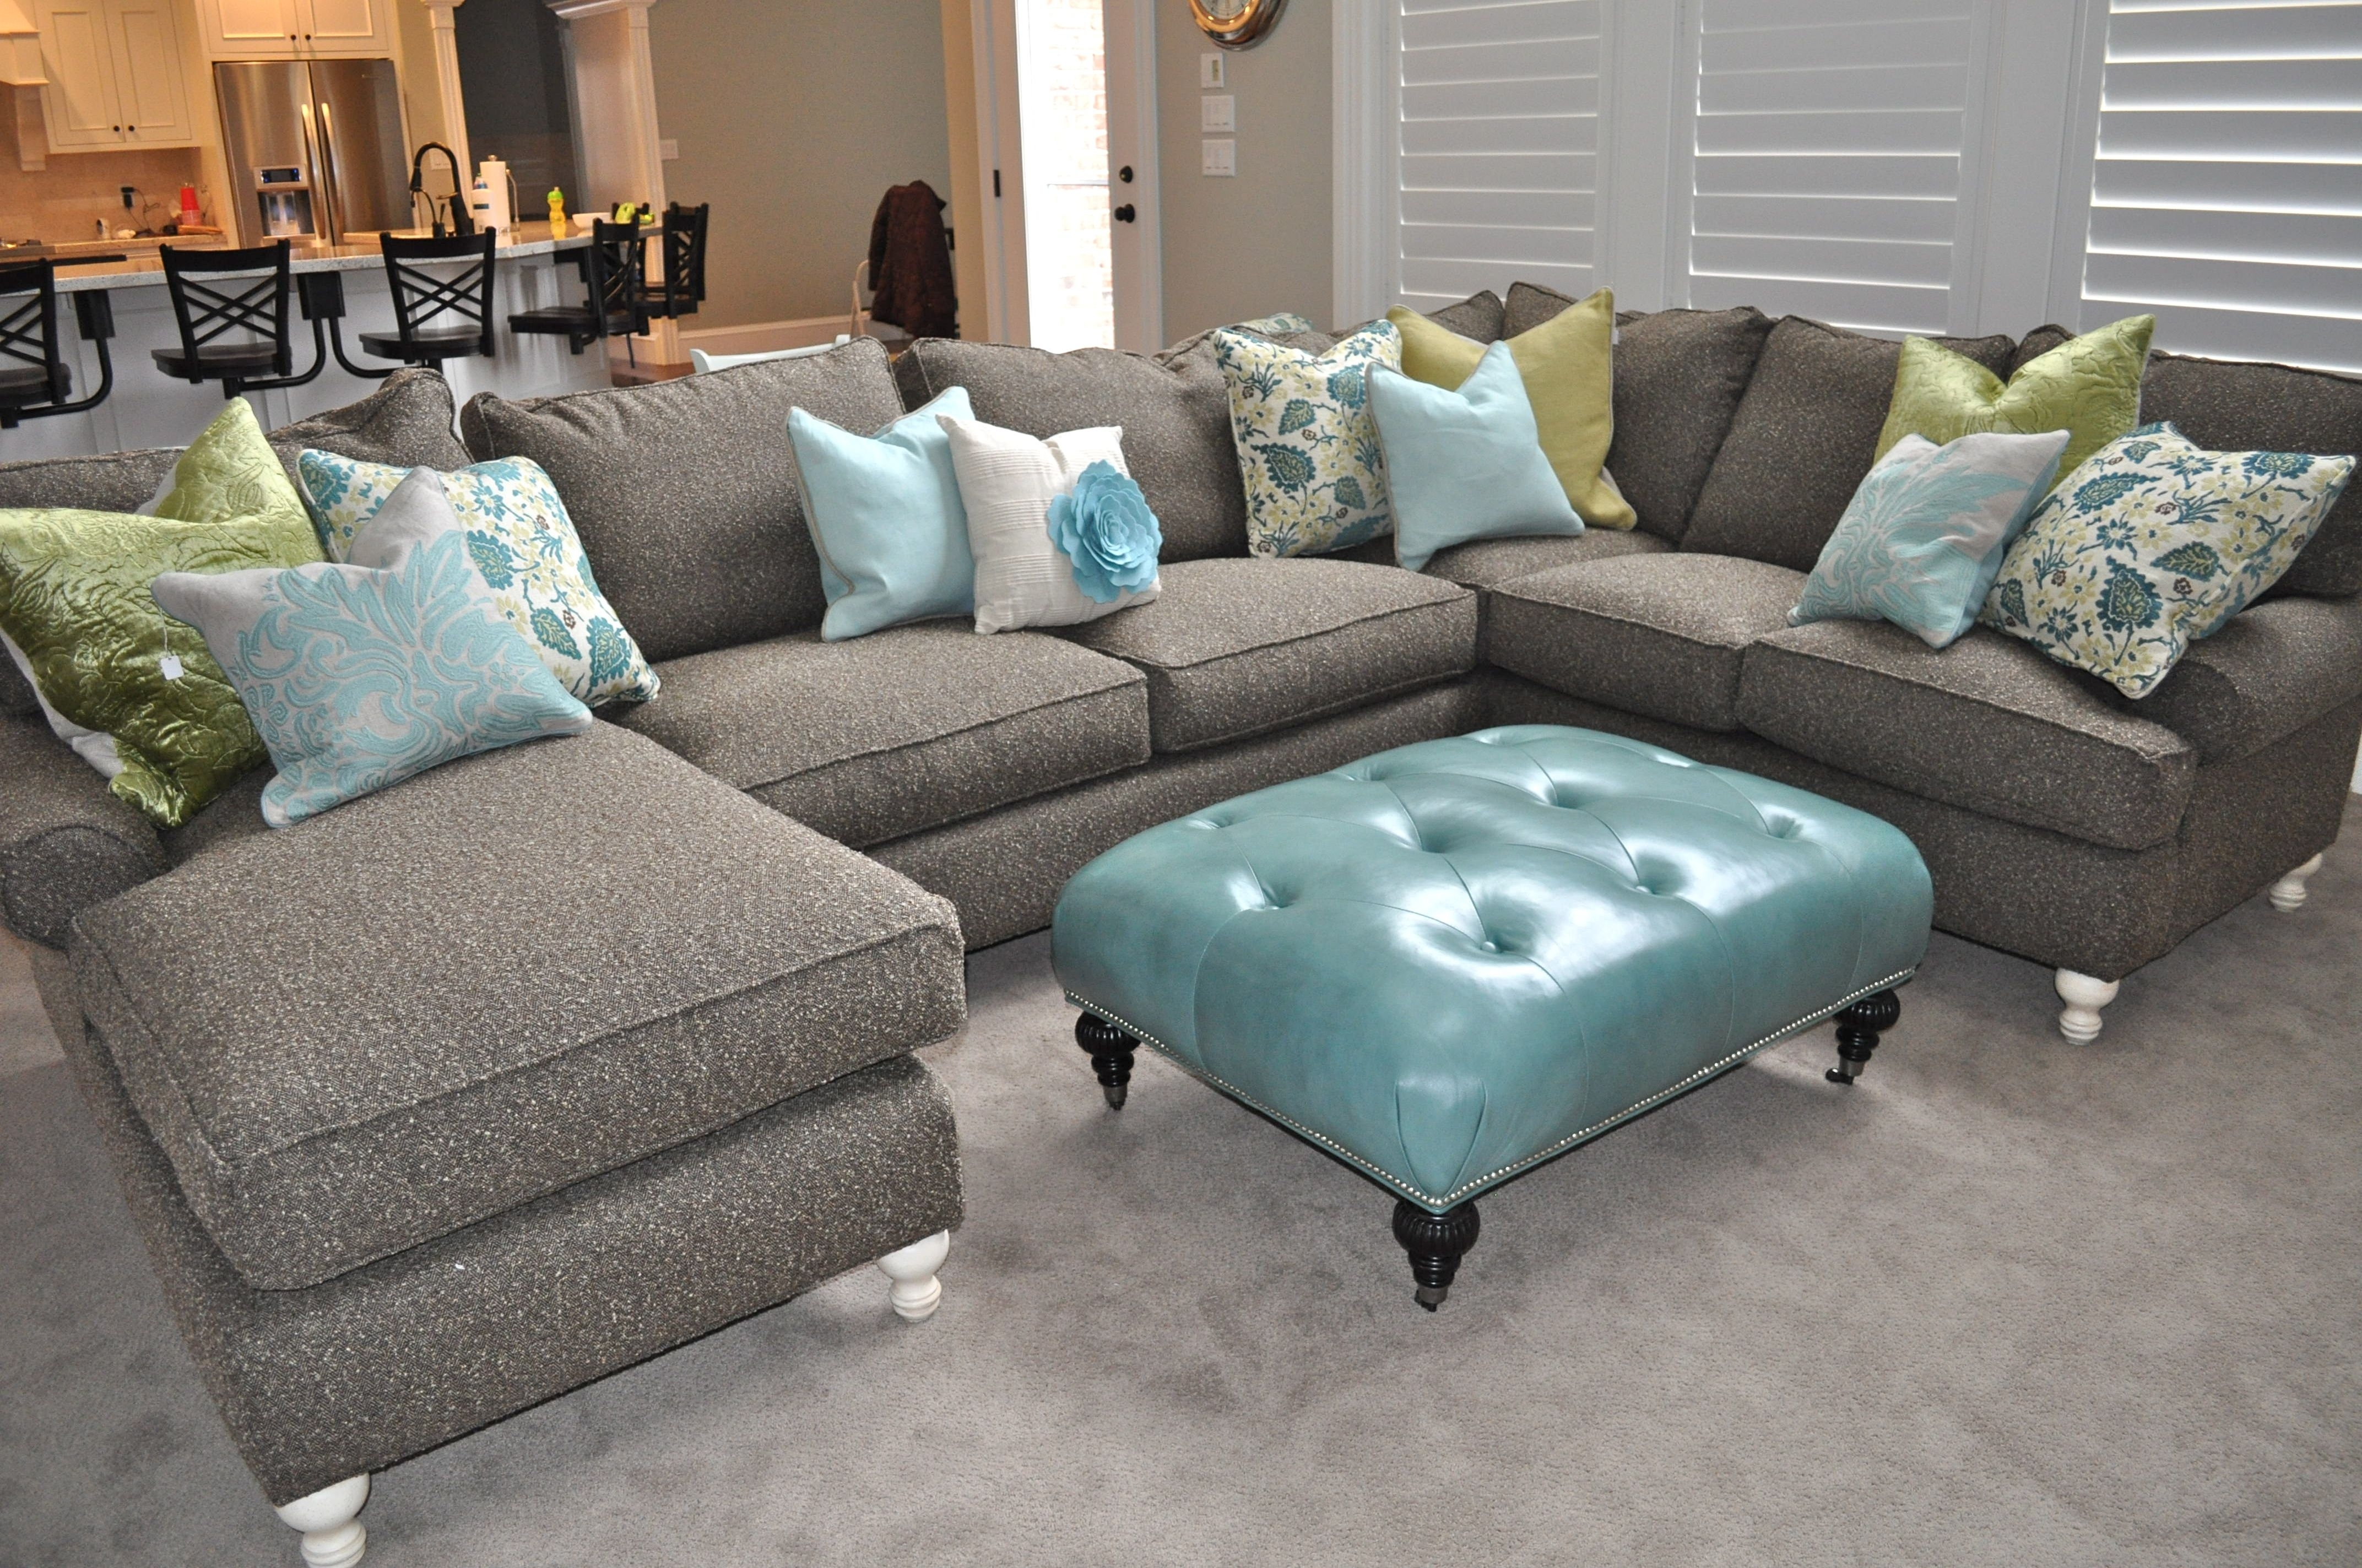 Cool Great U Sectional Sofas 79 About Remodel Interior Decor Home Throughout Blue U Shaped Sectionals (View 2 of 10)